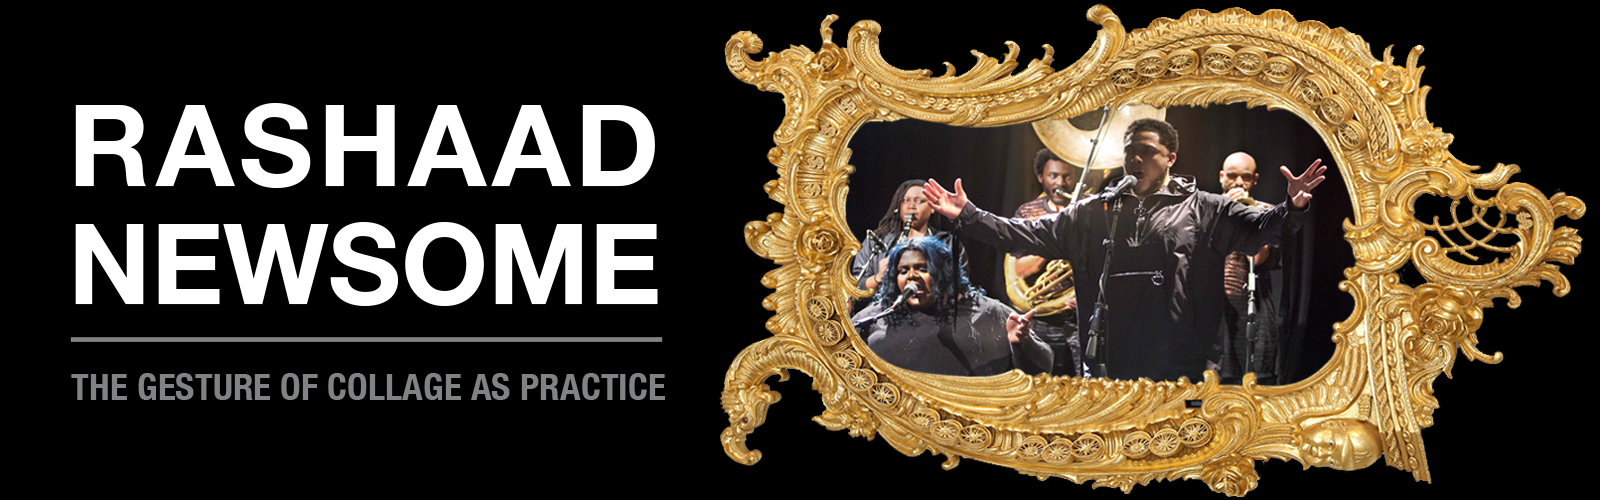 Rashaad Newsome: The Gesture of Collage as Practice header image